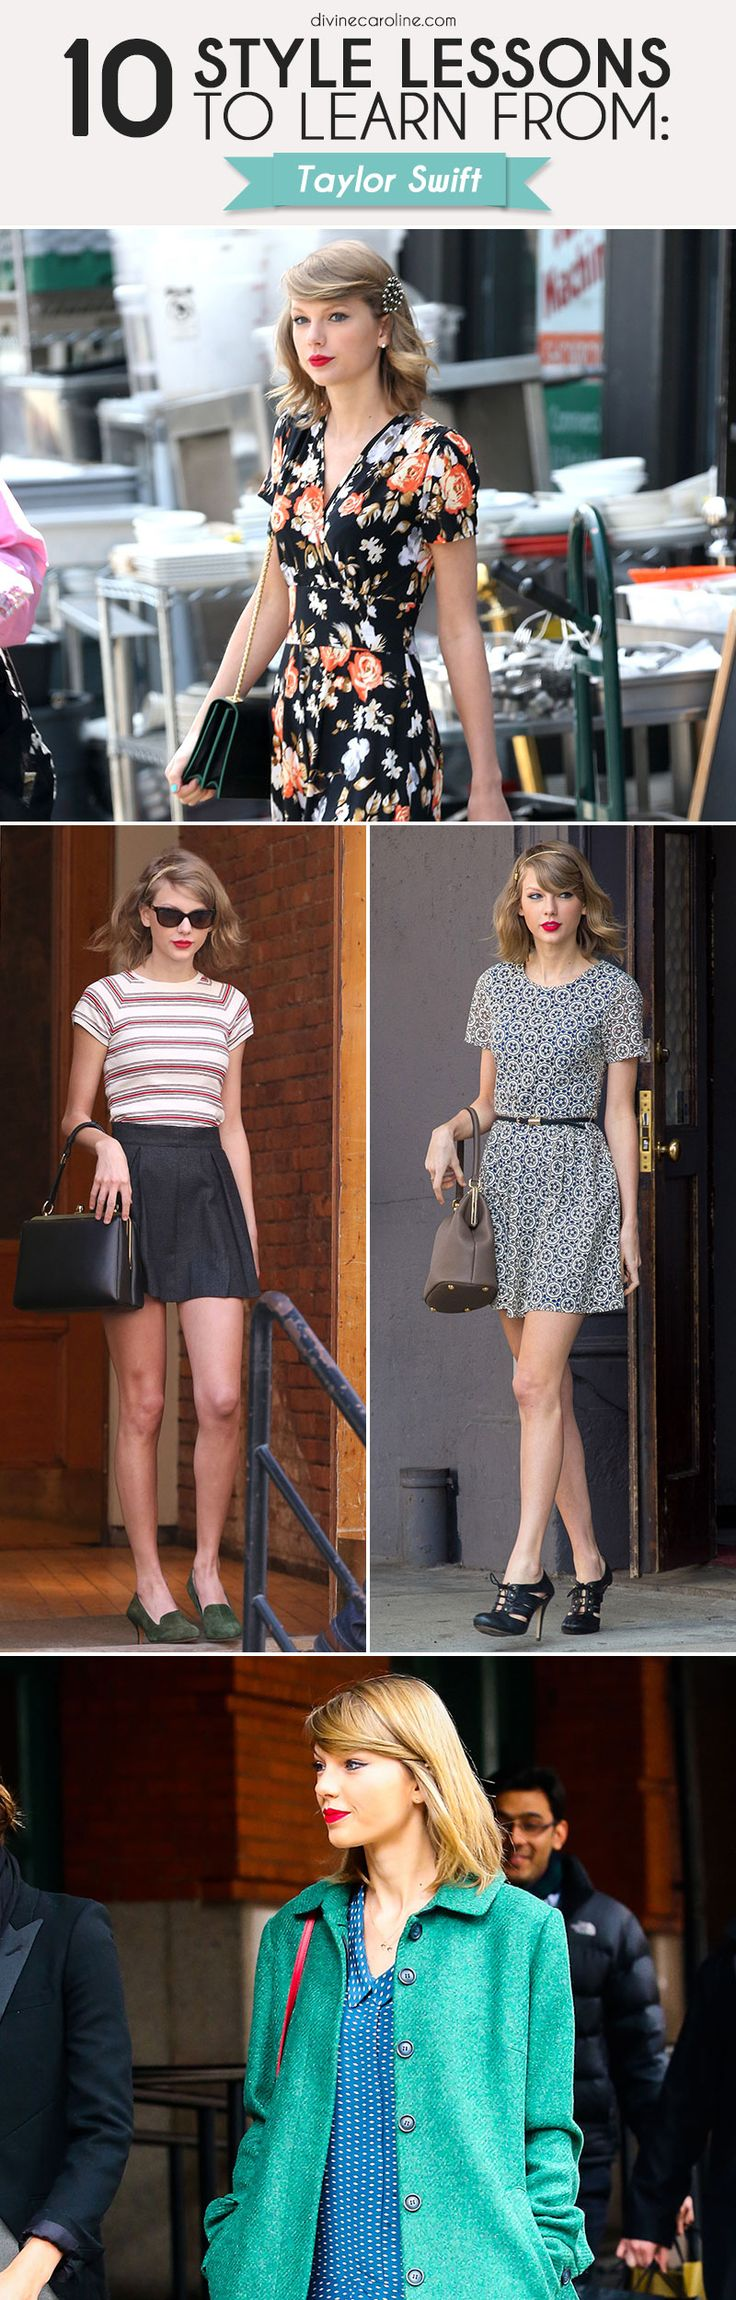 Taylor Swift's style goes from girly to glam, and she nails it every time. See what T-Swift can teach us about style here! #TaylorSwift #styleguide